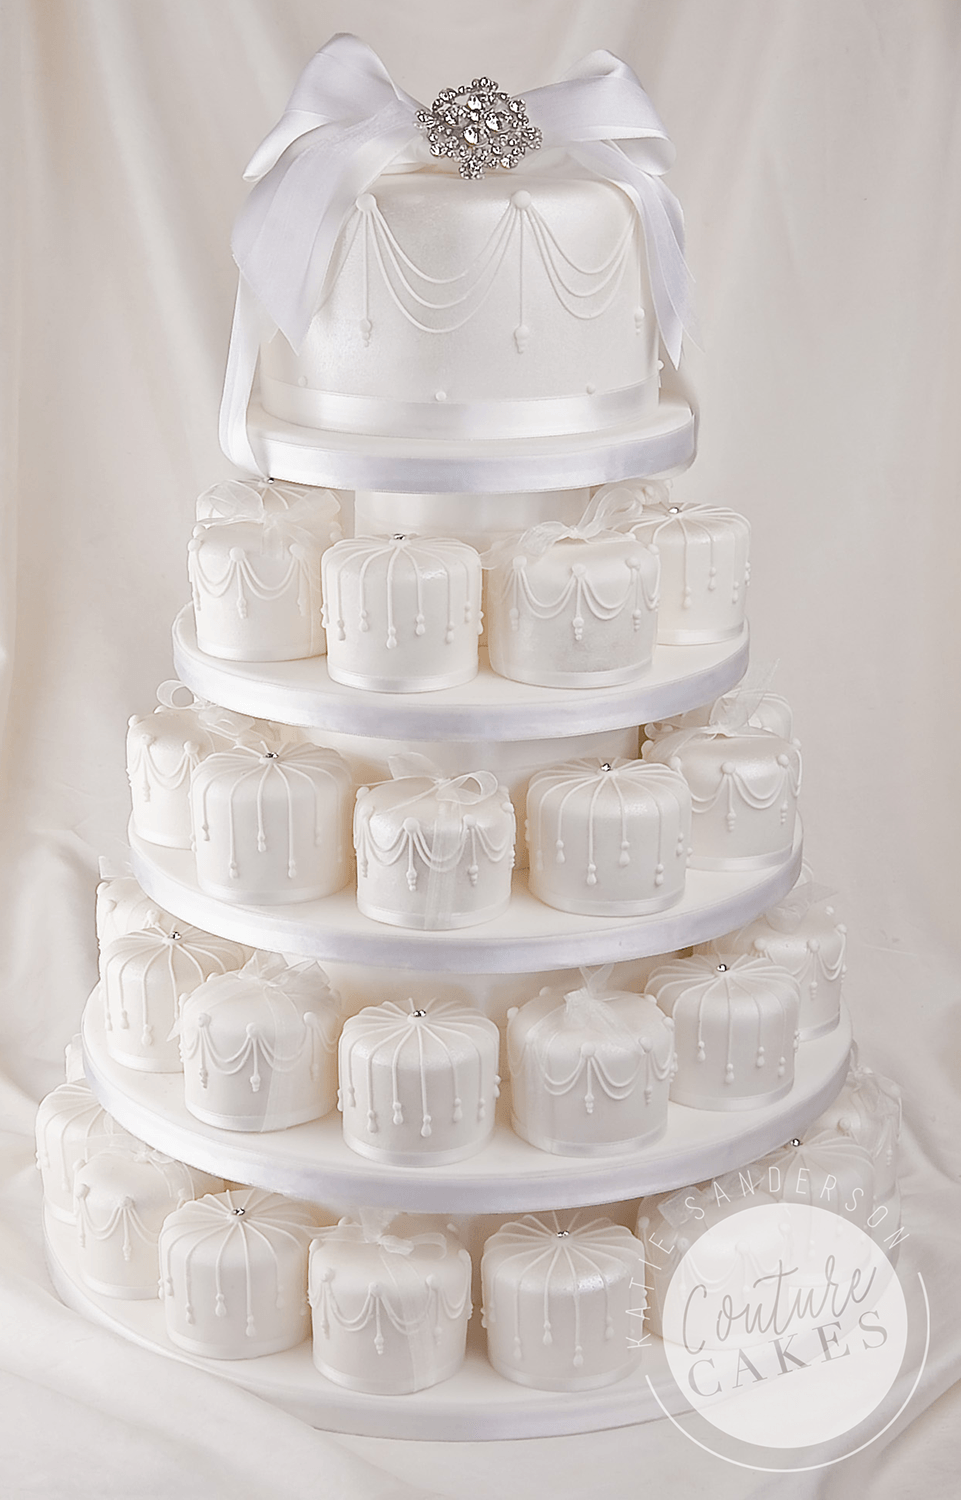 Serves 46 mini cakes and 20 portion top tier, As pictured £577 (for 46 mini cakes and 20 portion top tier